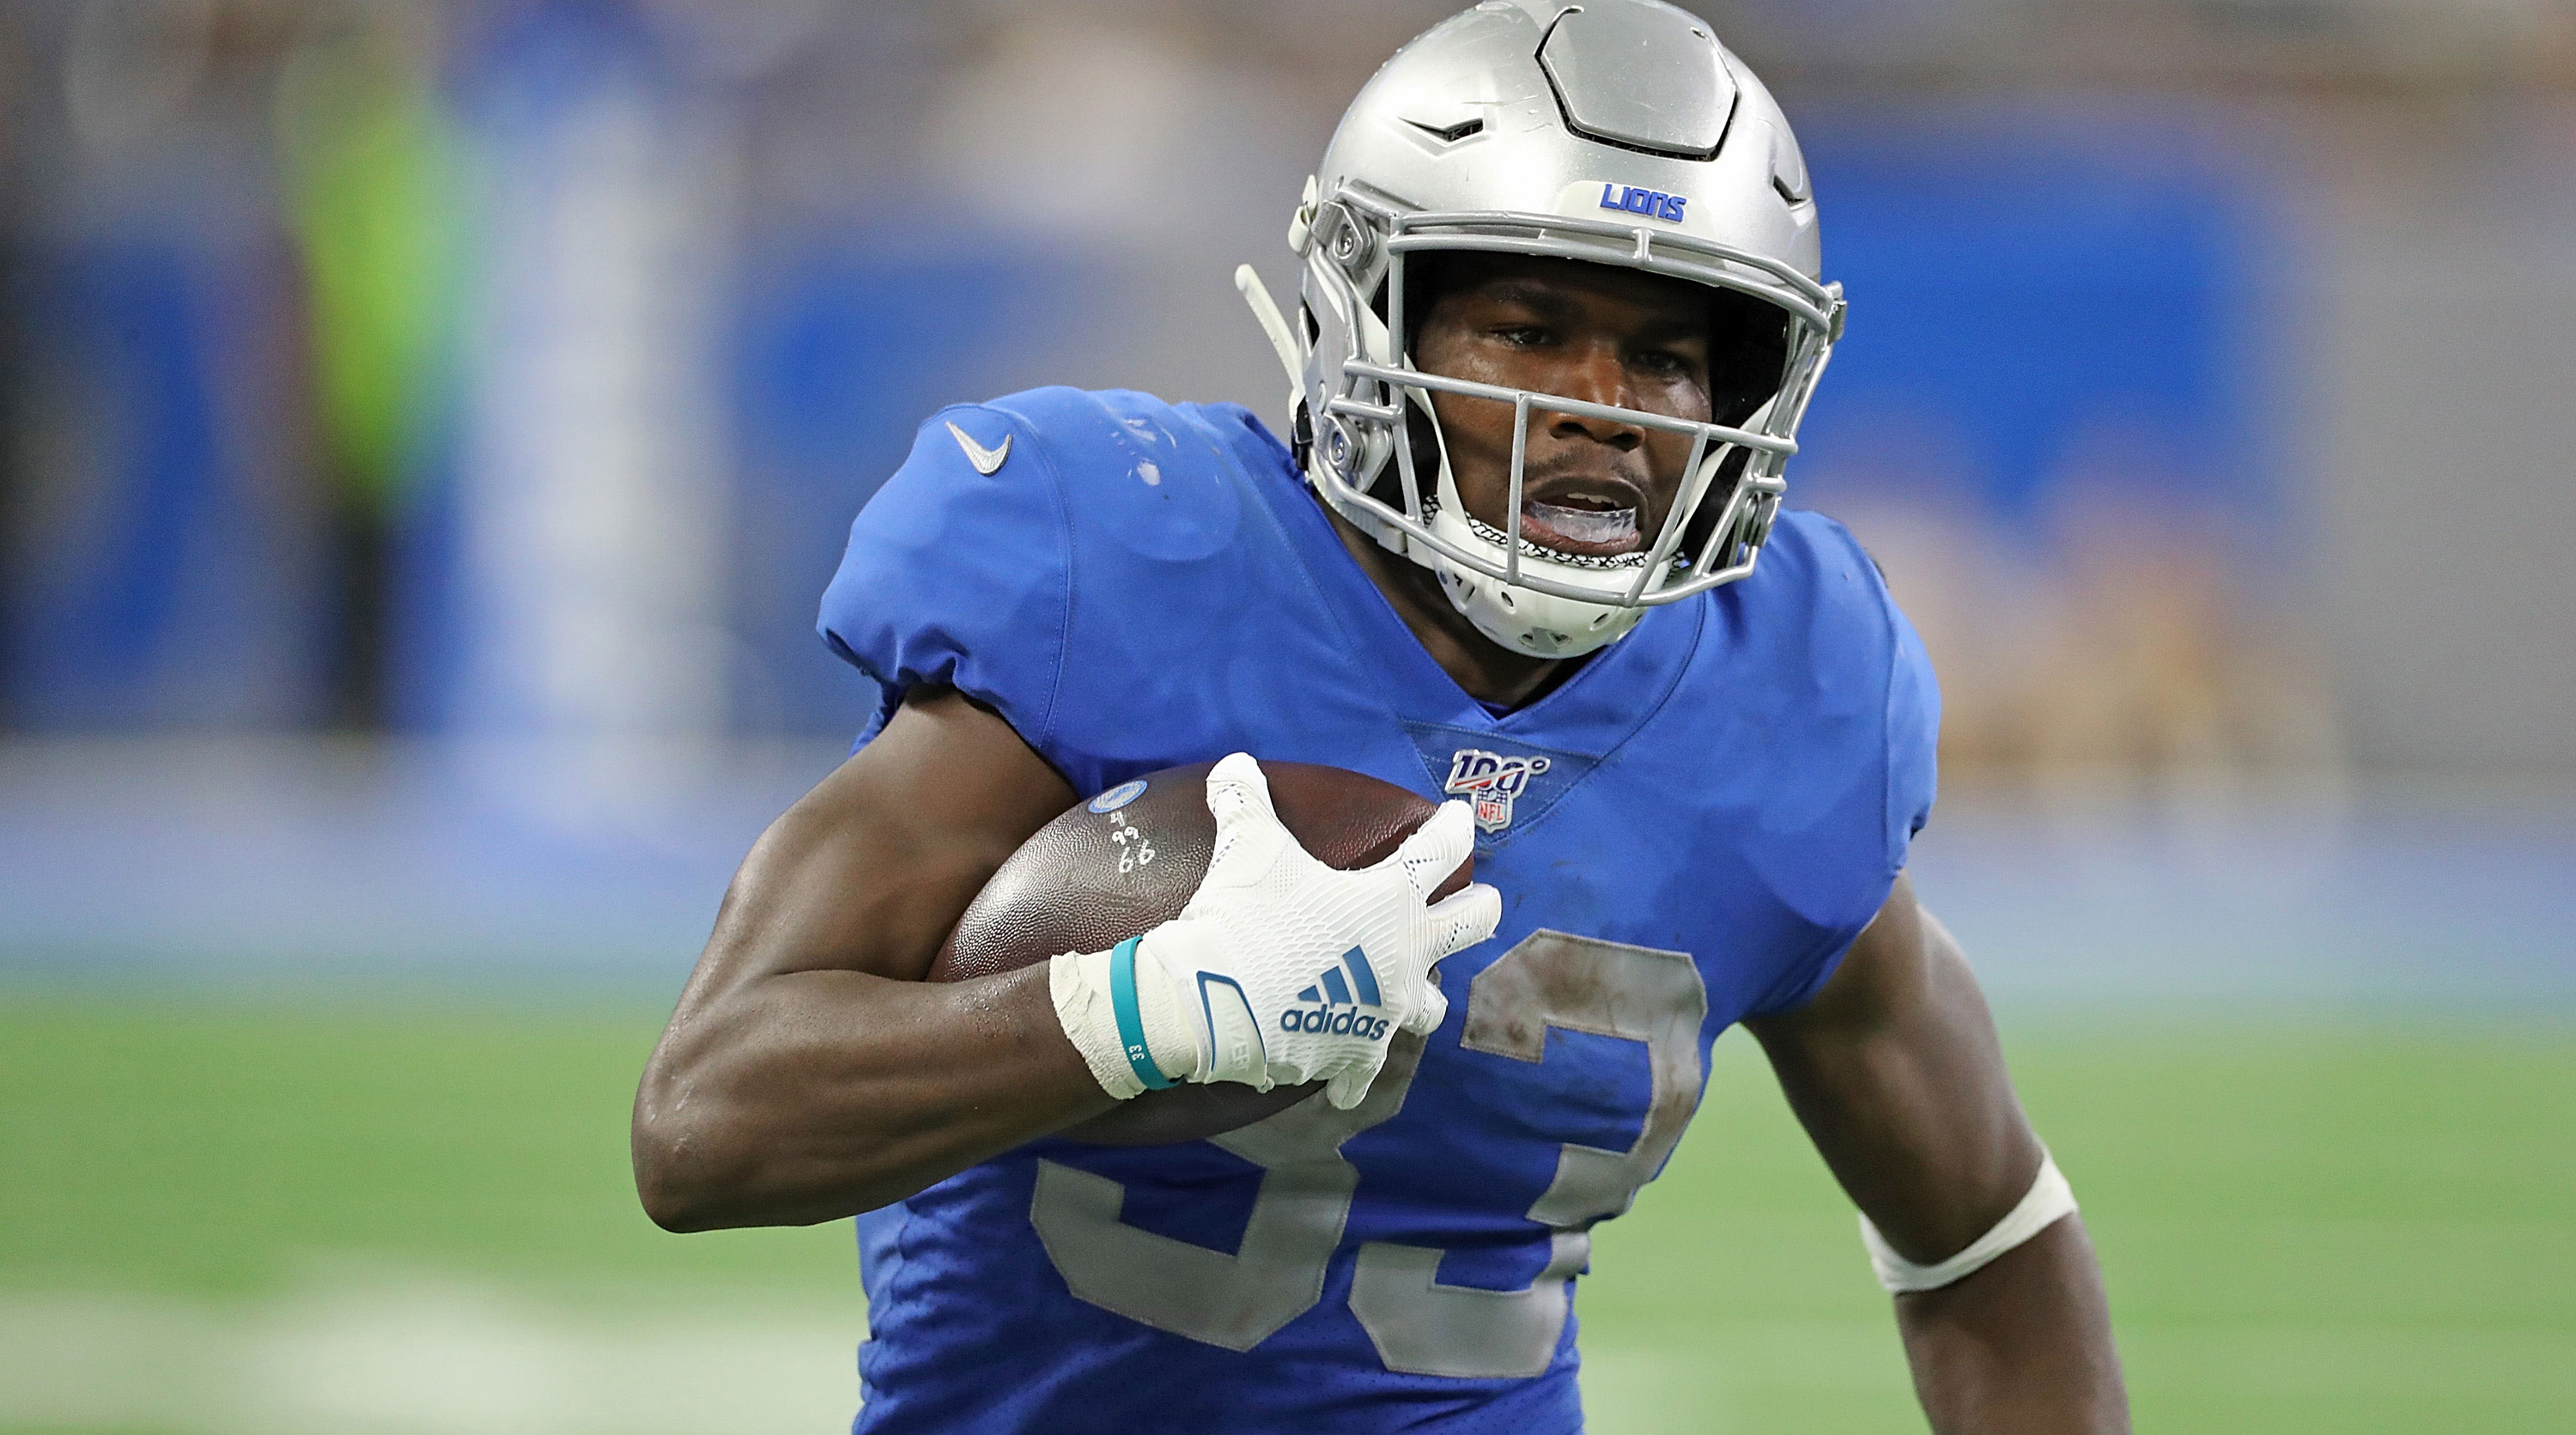 Kerryon Johnson running the ball for the Lions.